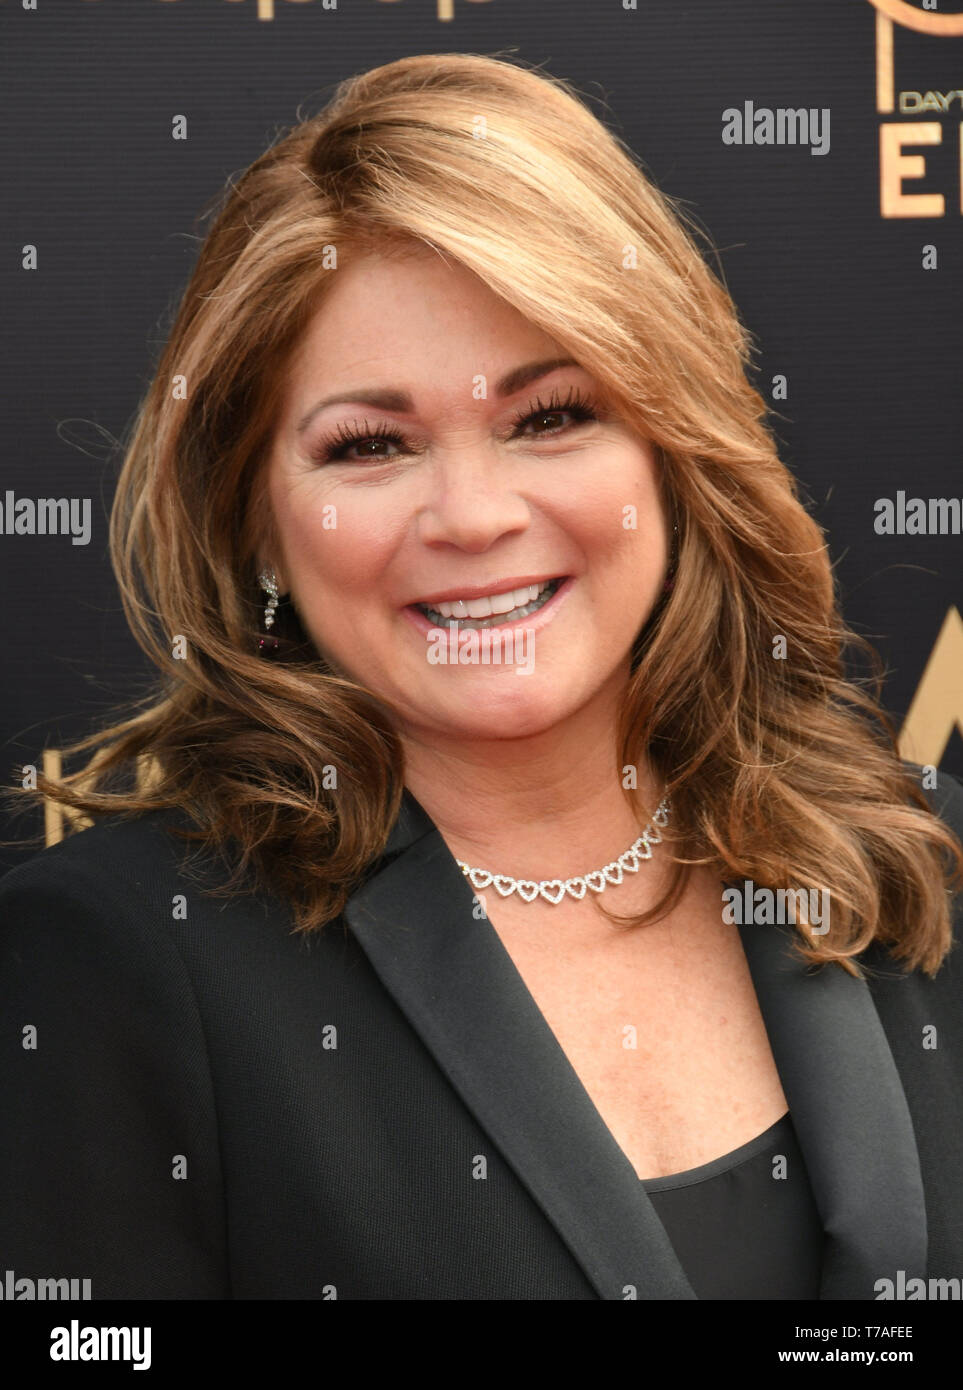 May 5 2019 Pasadena California U S 05 May 2019 Pasadena California Valerie Bertinelli 46th Annual Daytime